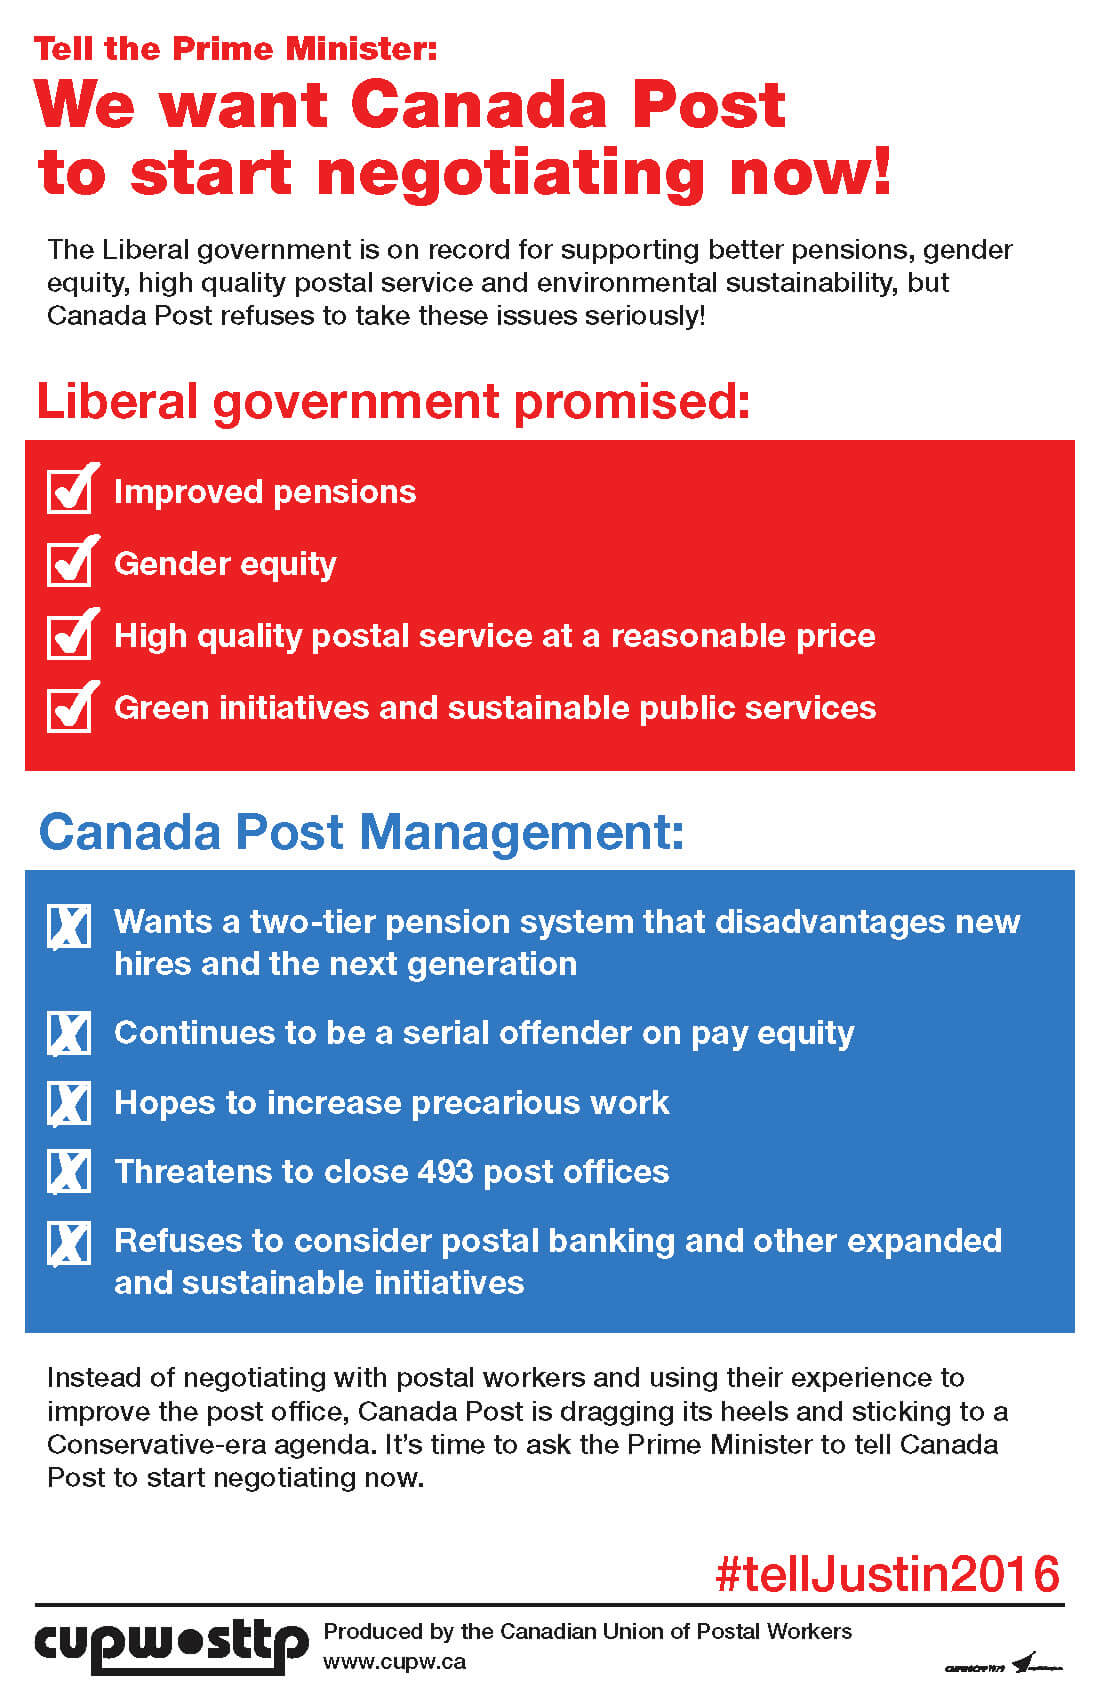 Tell the Prime Minister: We want Canada Post to start negotiating now!